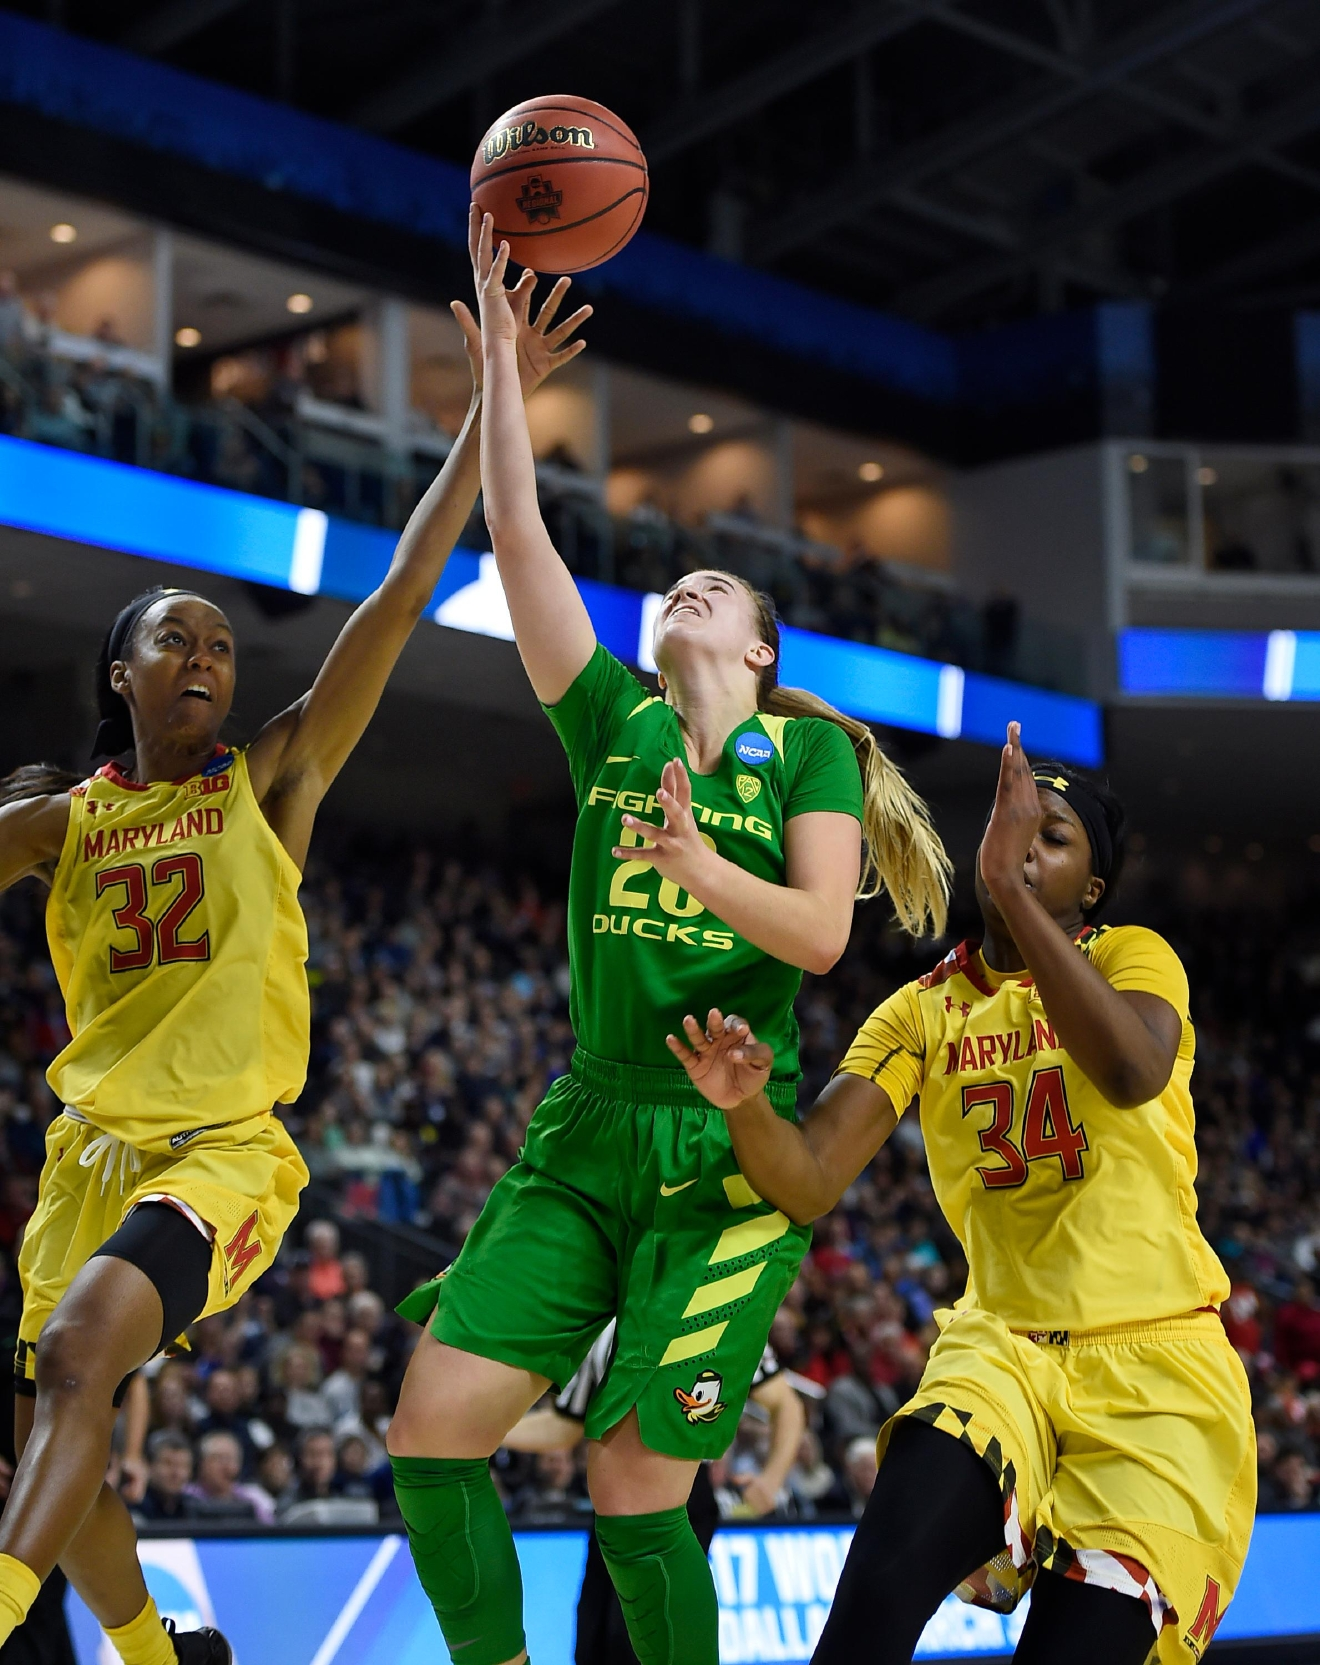 Oregon's Sabrina Ionescu shoots between Maryland's Shatori Walker-Kimbrough, left, and Maryland's Brianna Fraser, right, during the second half of a regional semifinal game in the NCAA women's college basketball tournament, Saturday, March 25, 2017, in Bridgeport, Conn. (AP Photo/Jessica Hill)